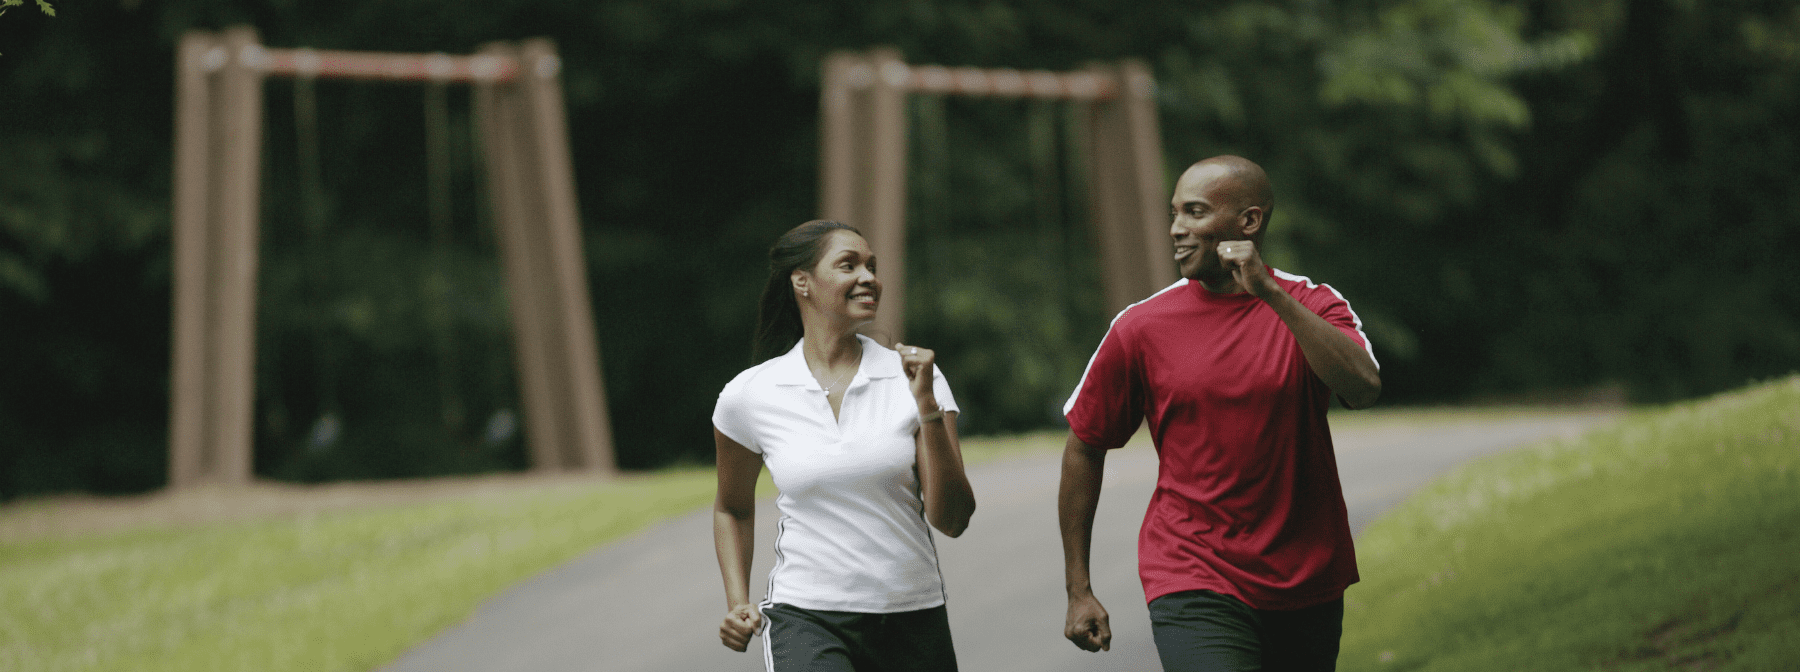 Can You Lose Weight Without Exercise?